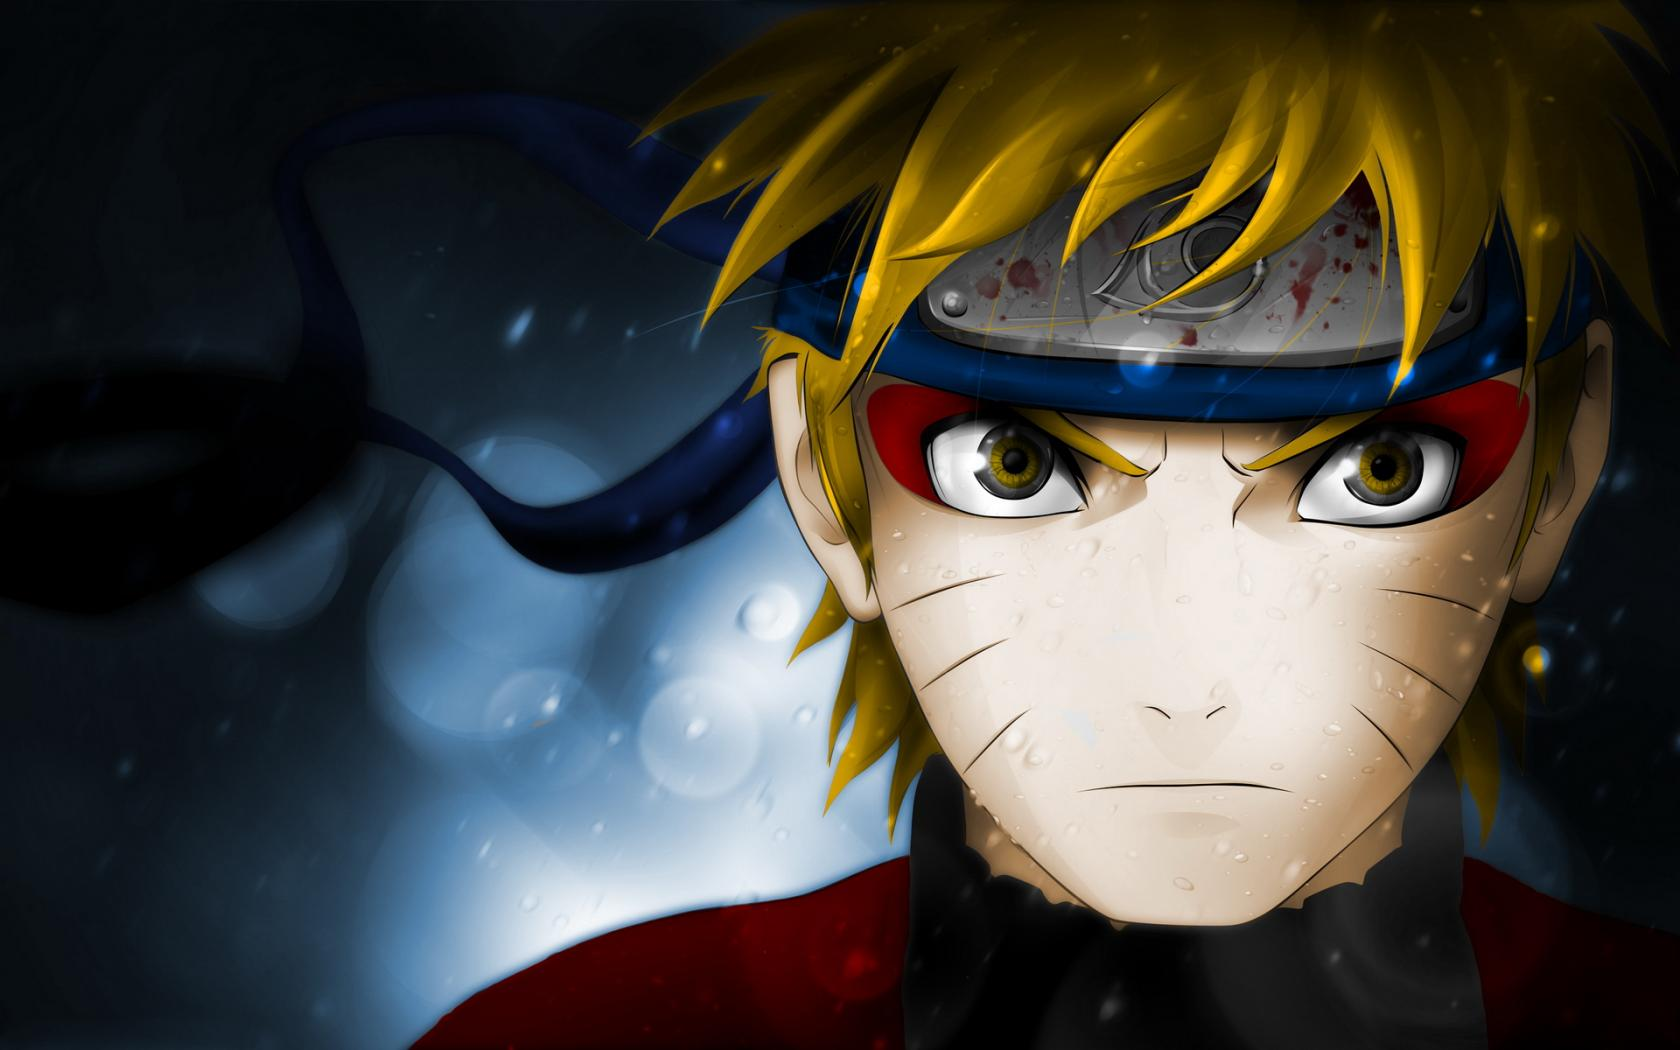 Naruto Wallpaper Widescreen 10199 Hd Wallpapers In Anime Imagesci 1680x1050